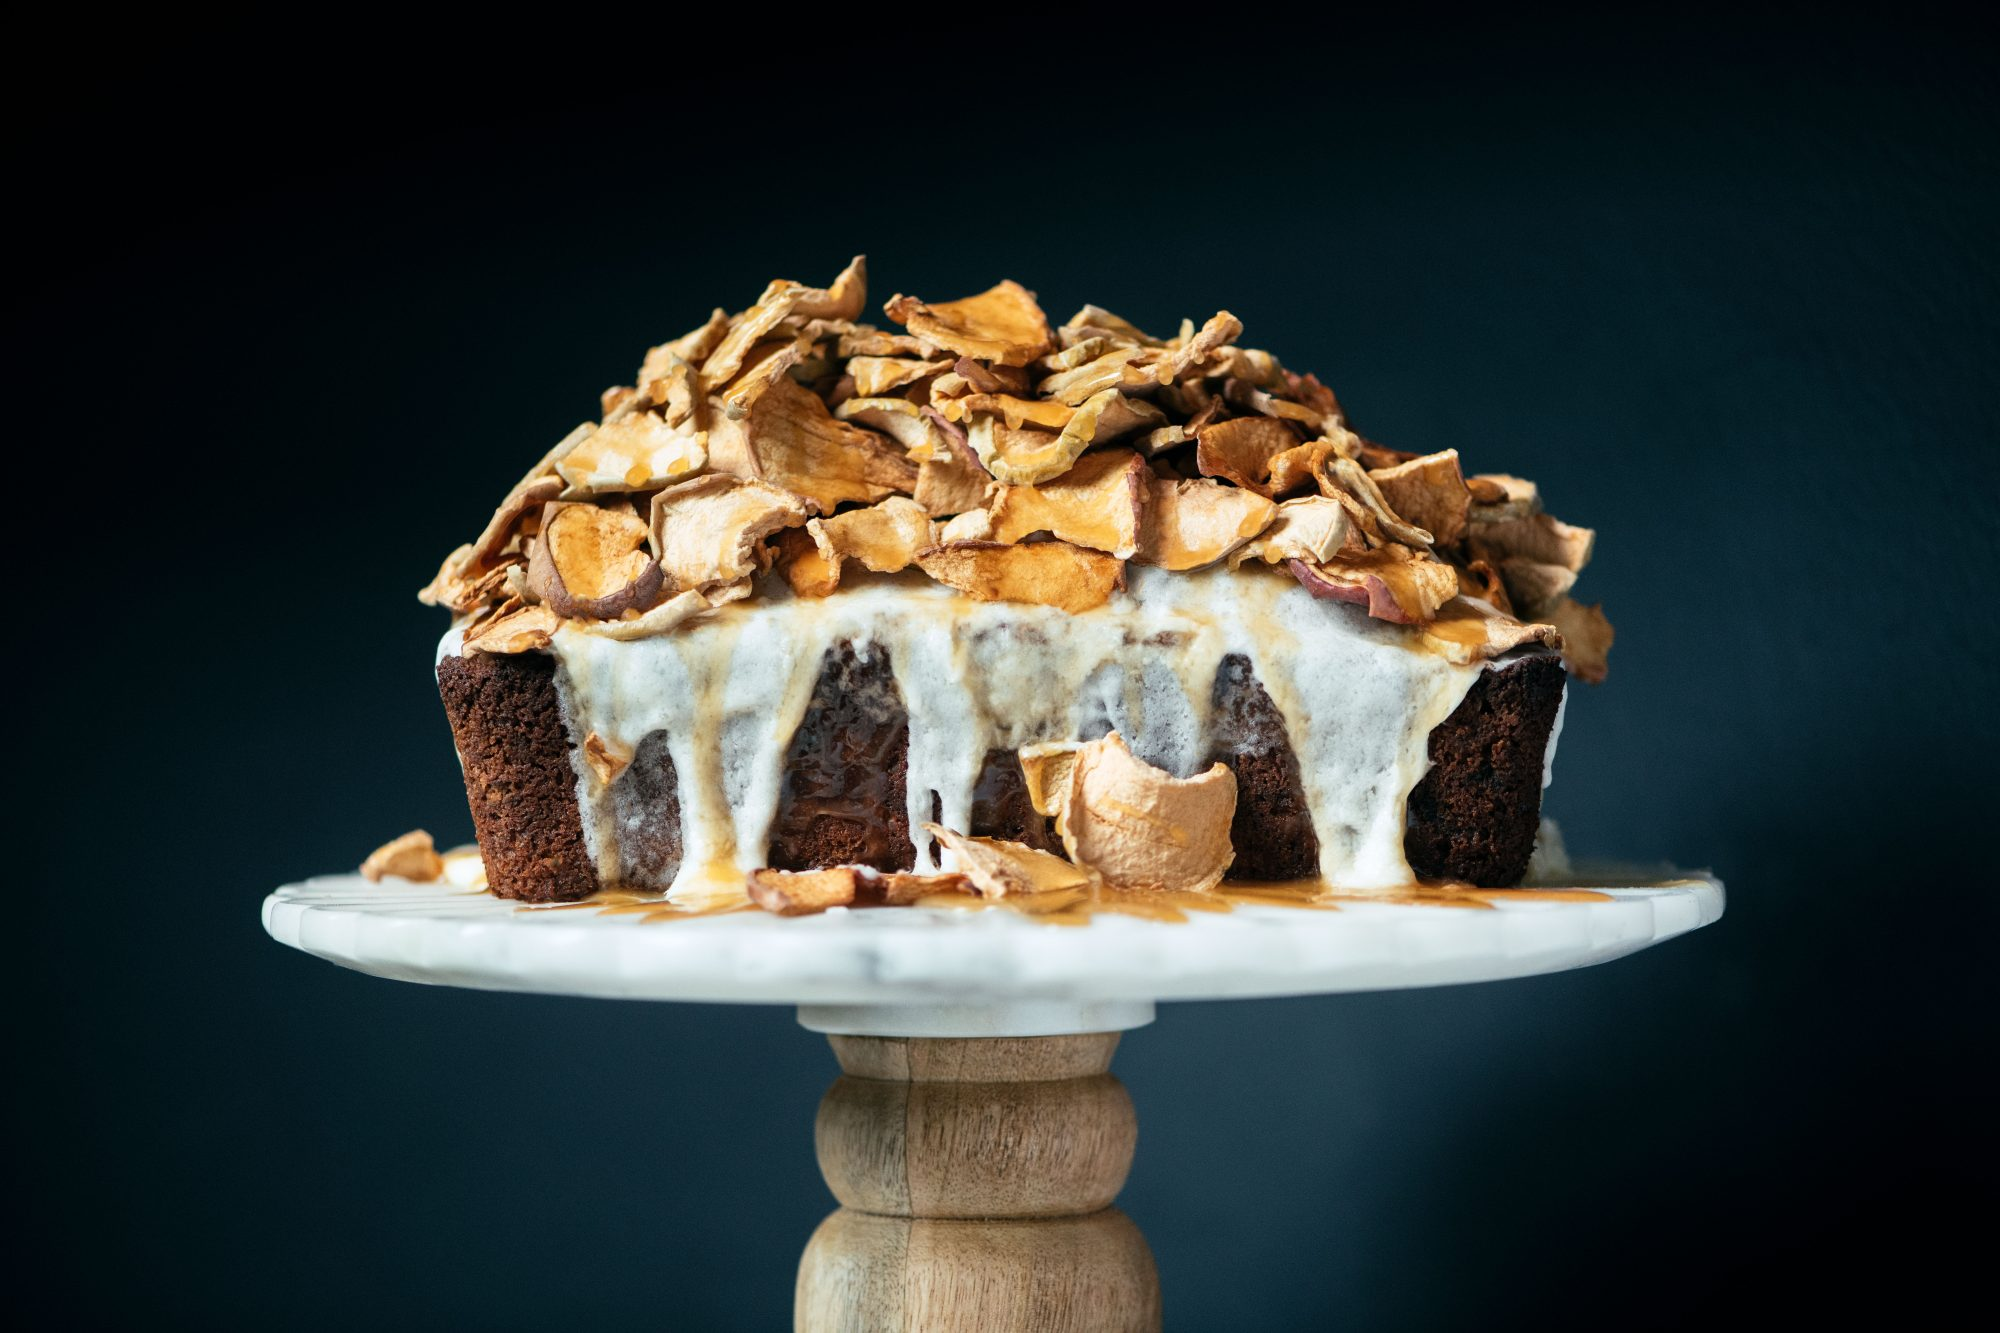 Amanda Mack's Apple-Almond Spice Cake with Brown Butter Frosting